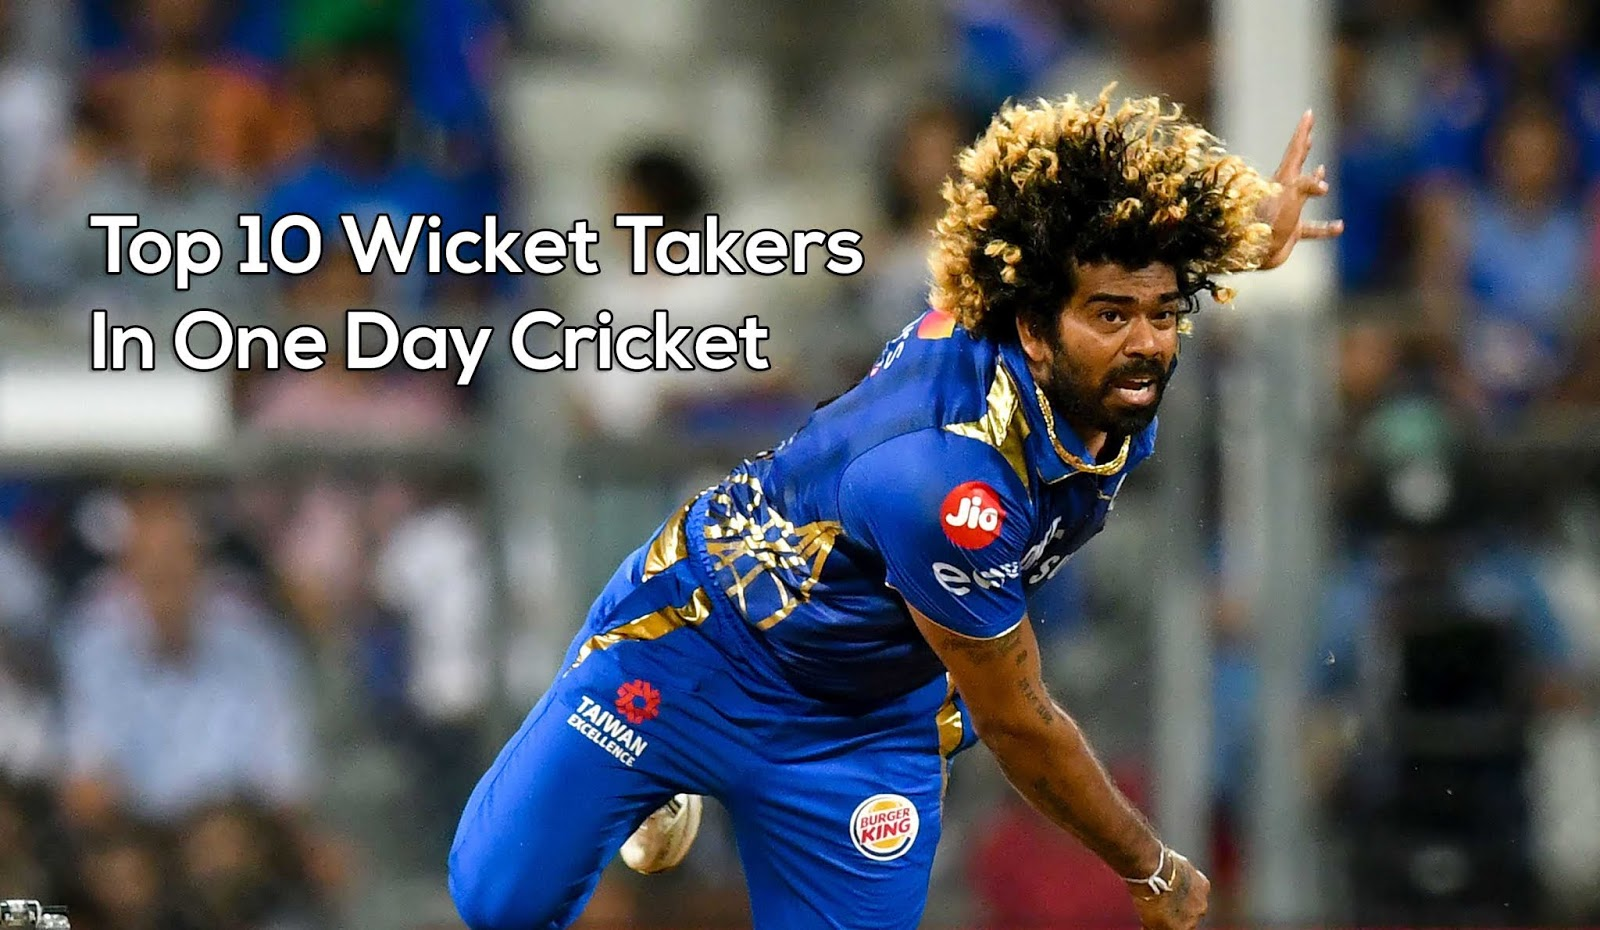 Top 10 Most Wicket Takers in ODI